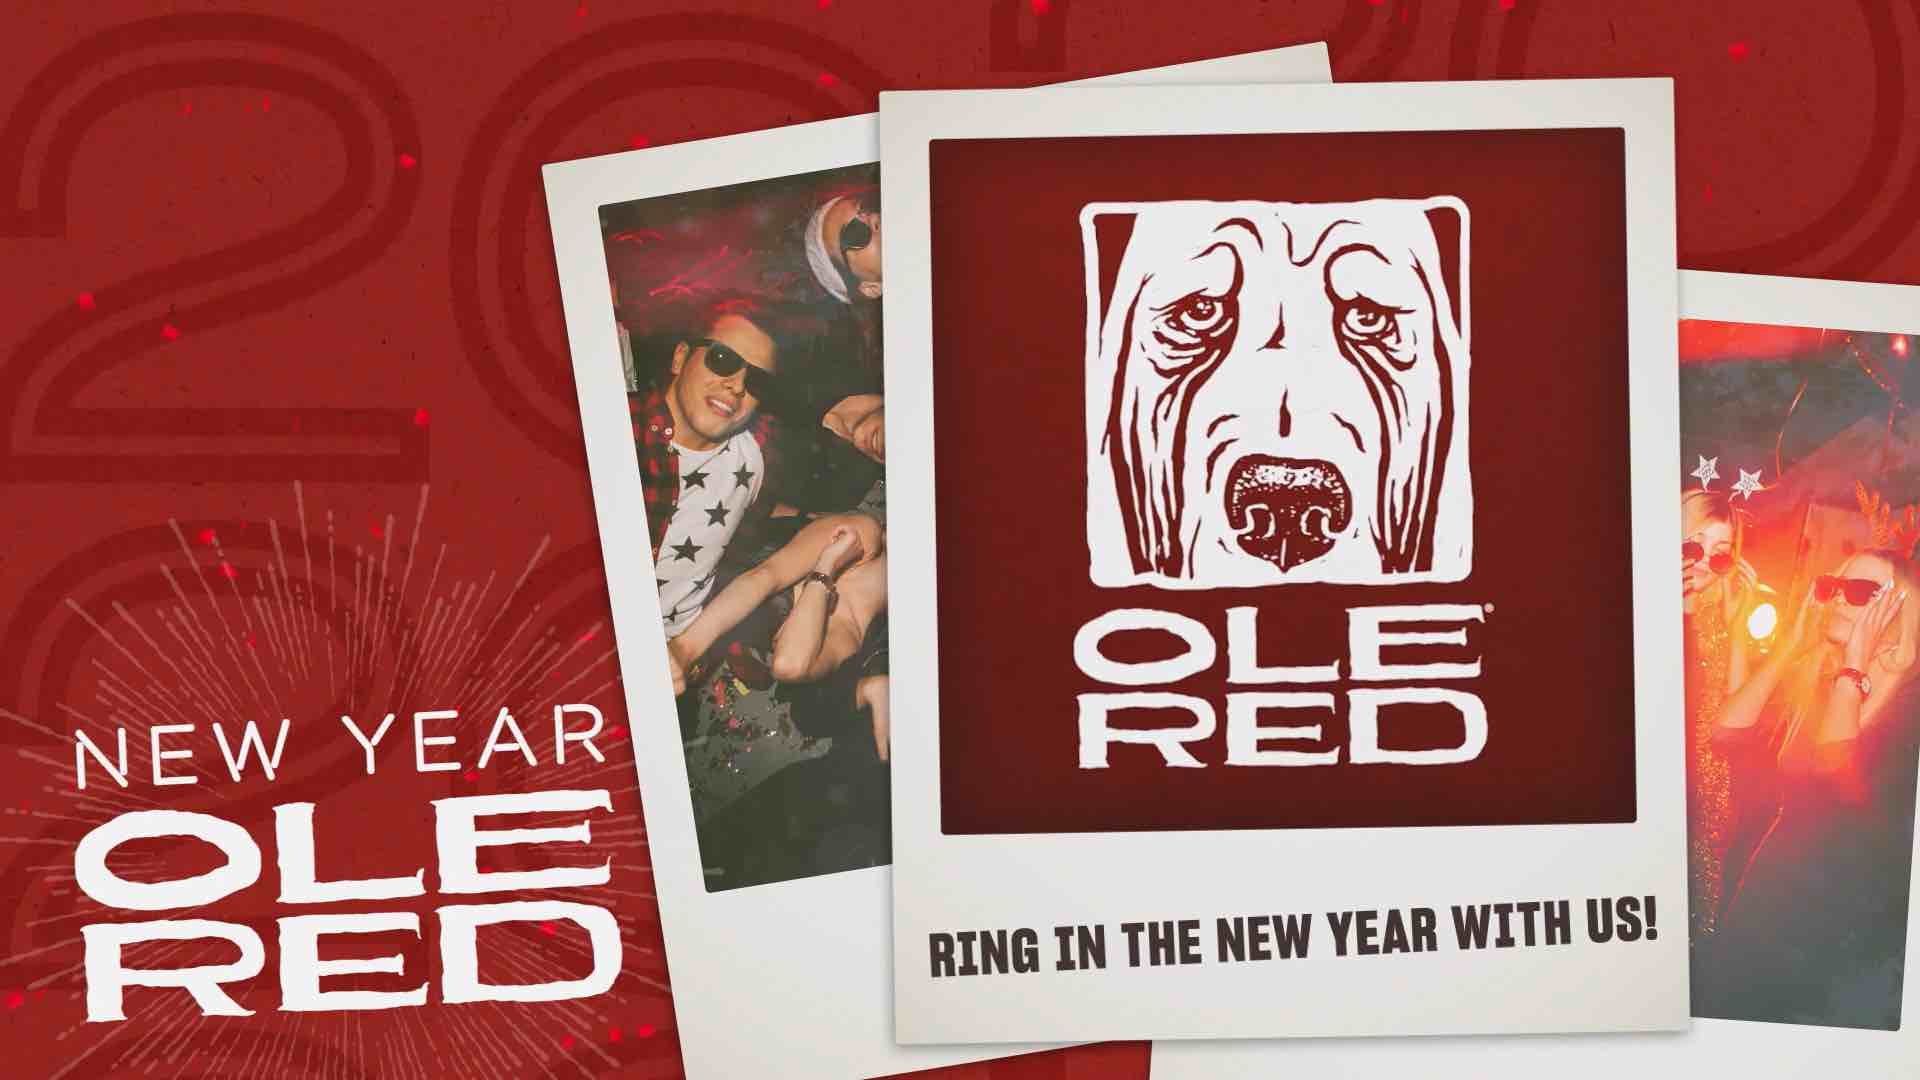 New Year. Ole Red. - Ring in the New Year with us!